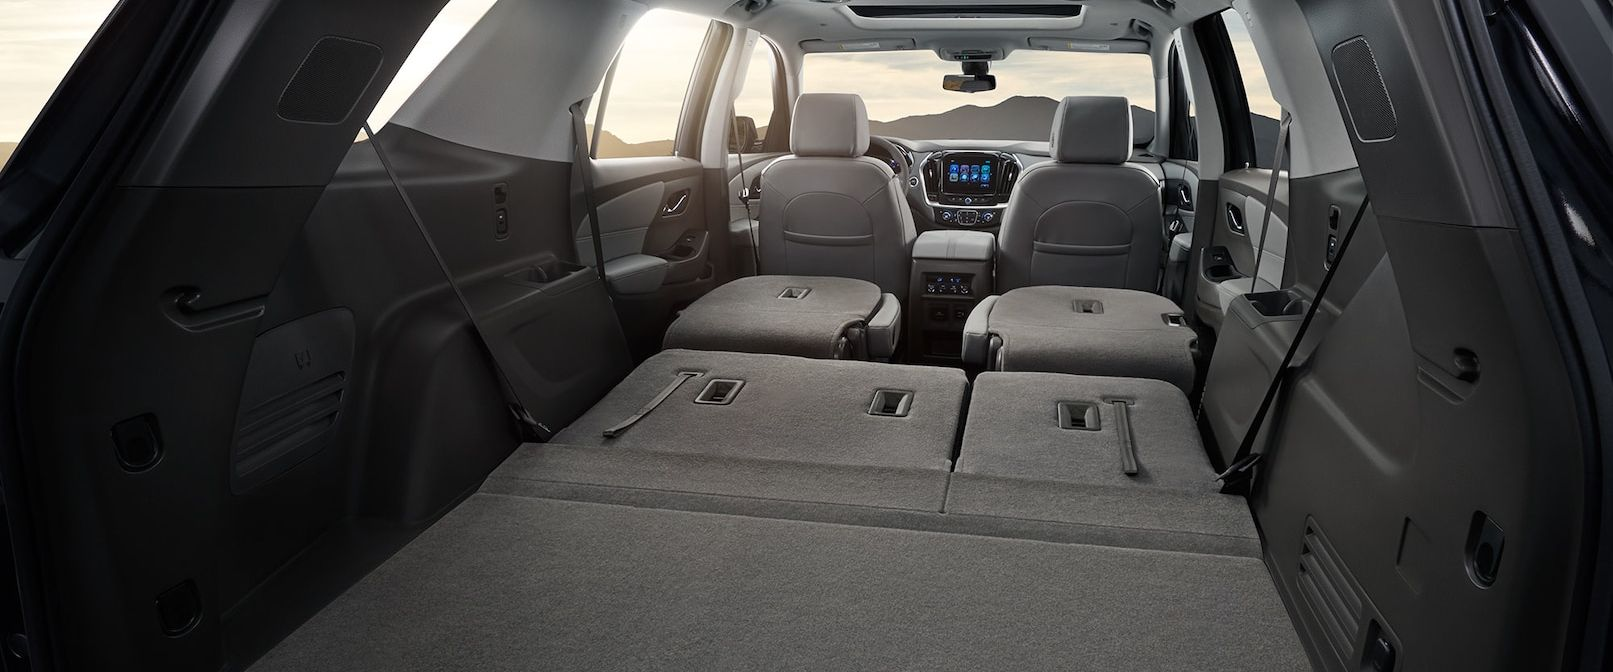 Cargo Space in the Traverse